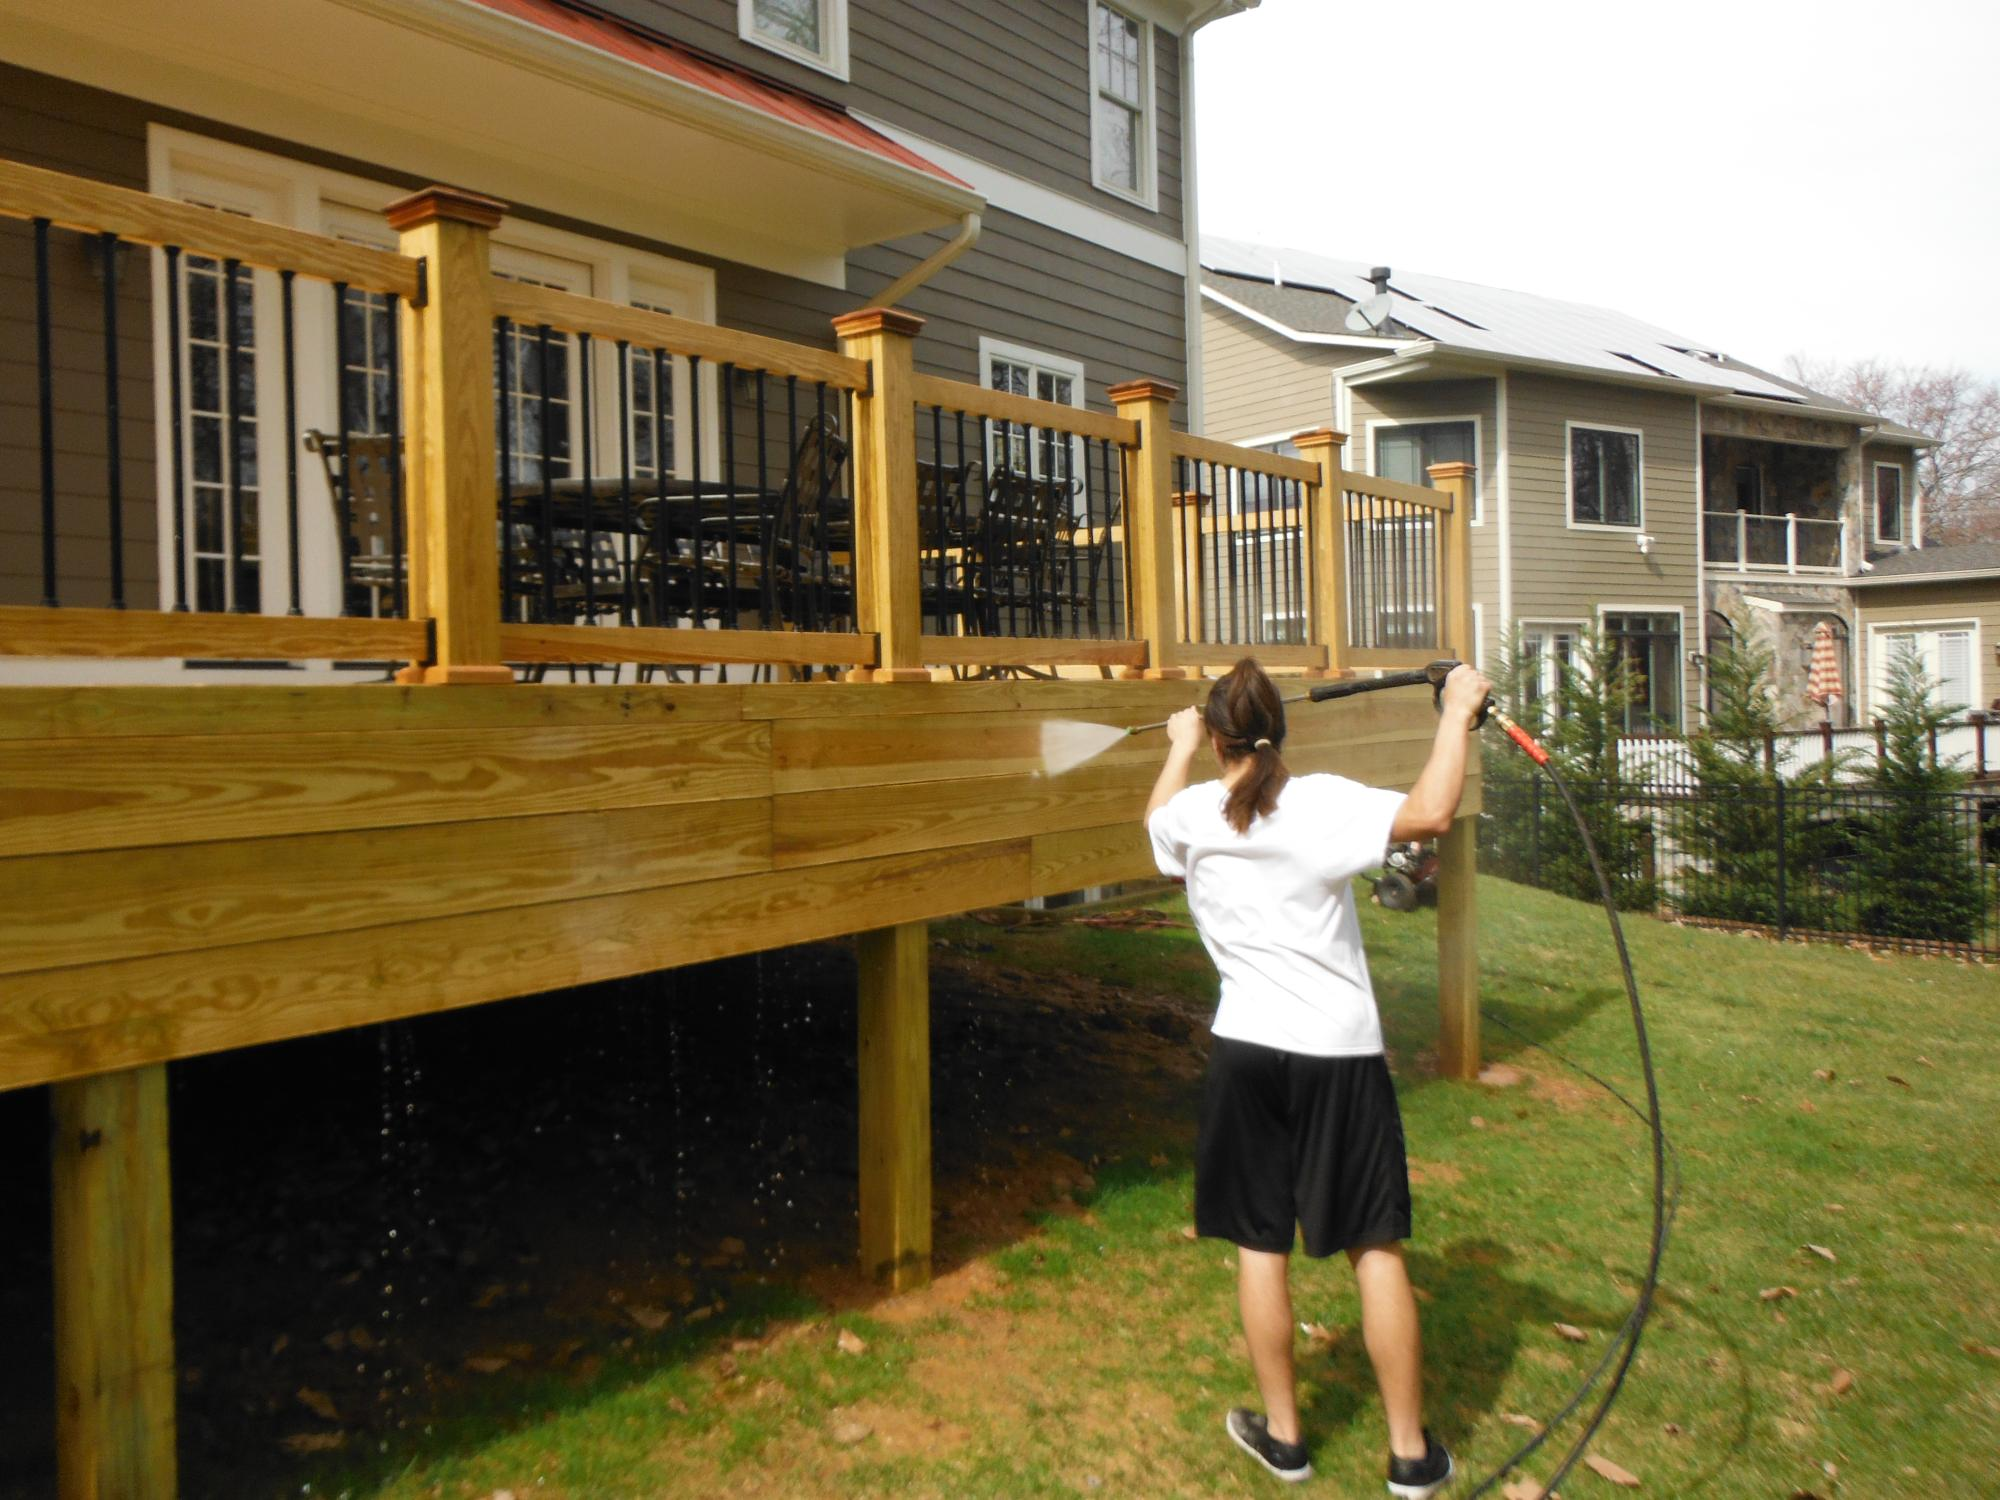 Cleaning white pine deck